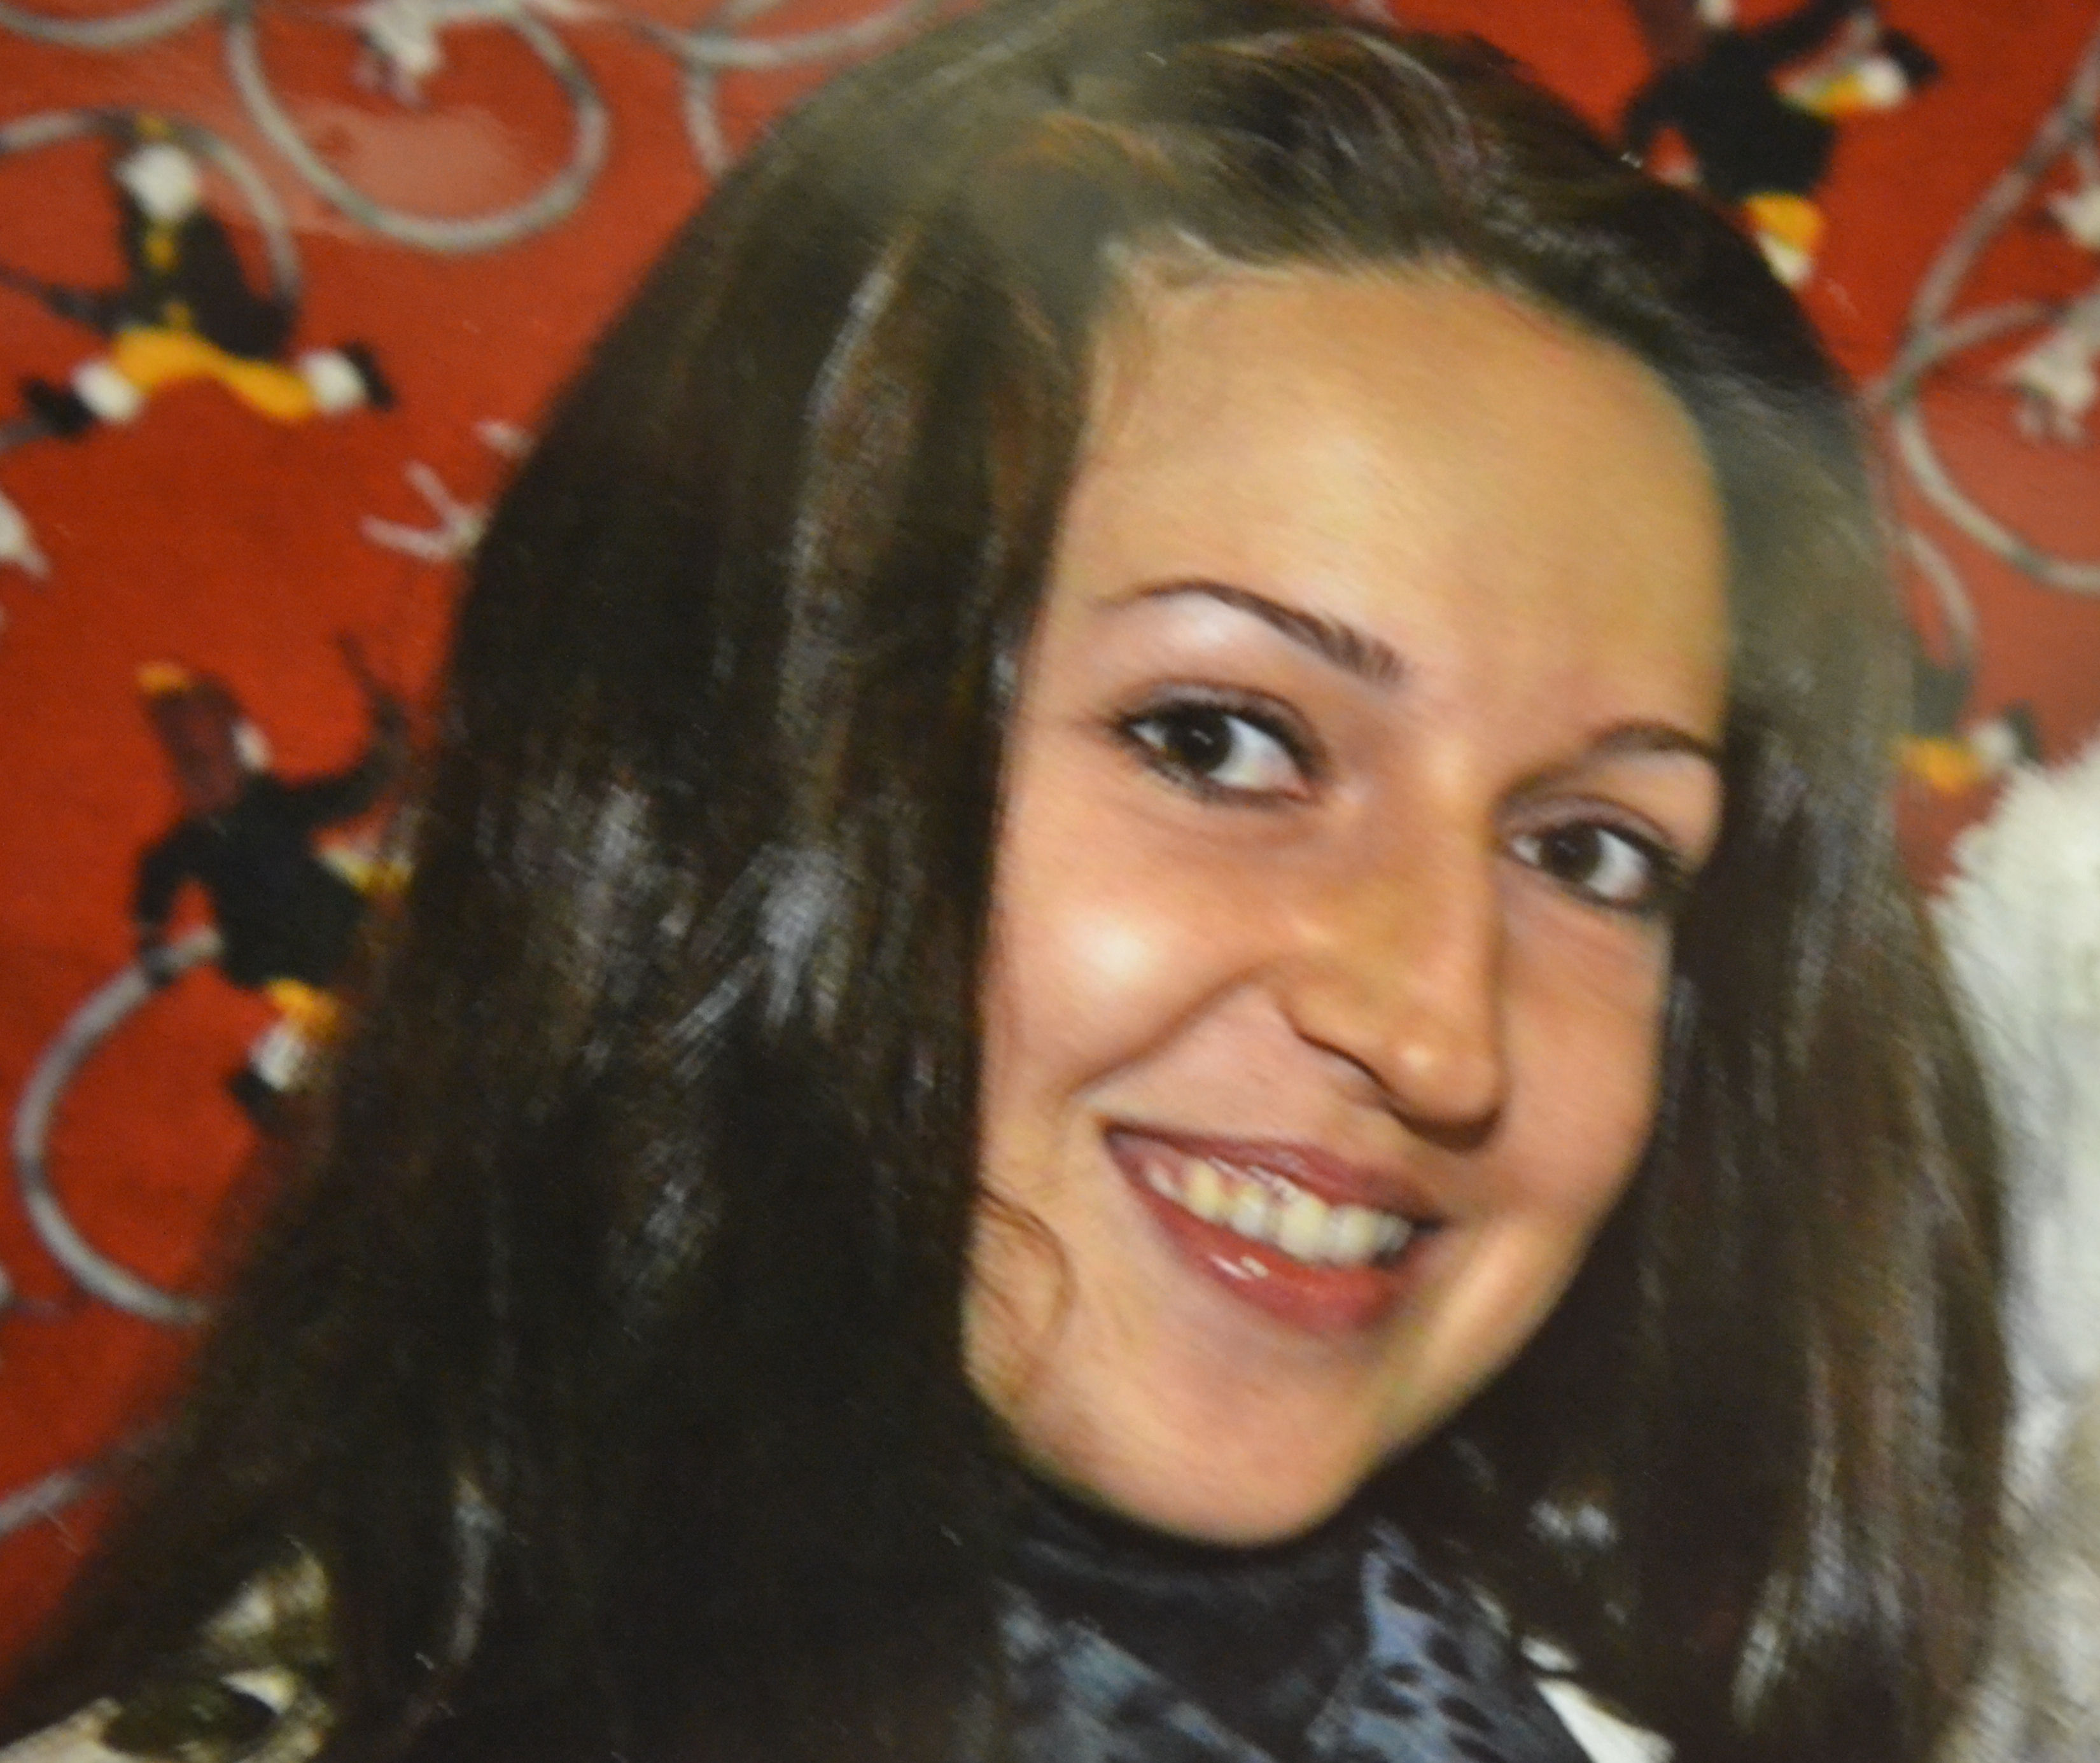 Anna Babkina Missing Person